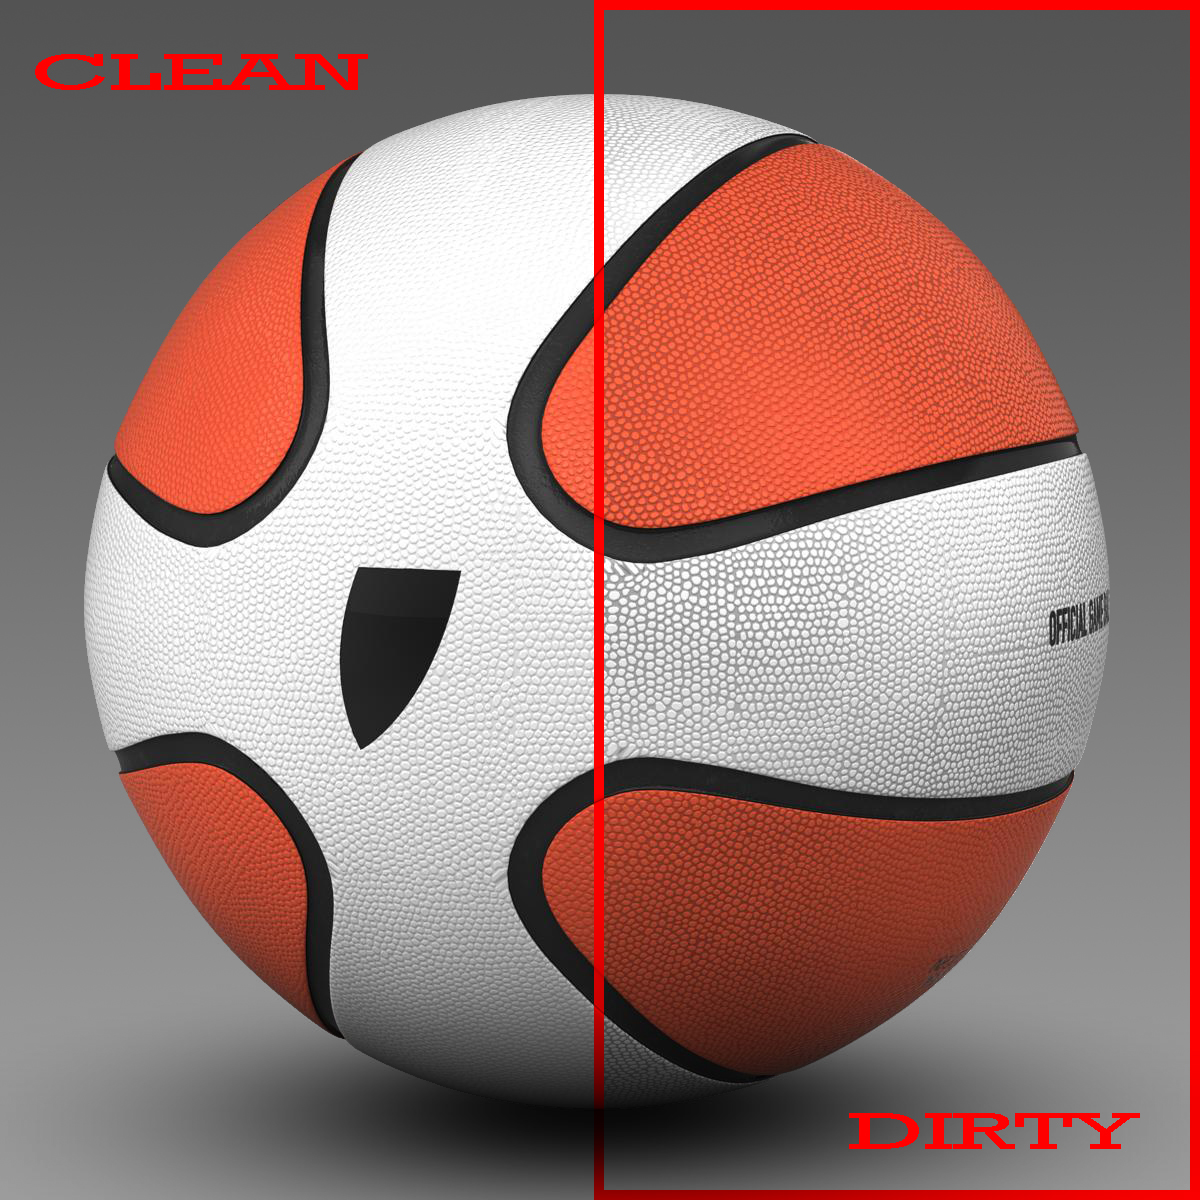 basketbalový míč hvězda bicolor 3d model 3ds max fbx c4d ma mb obj 165782